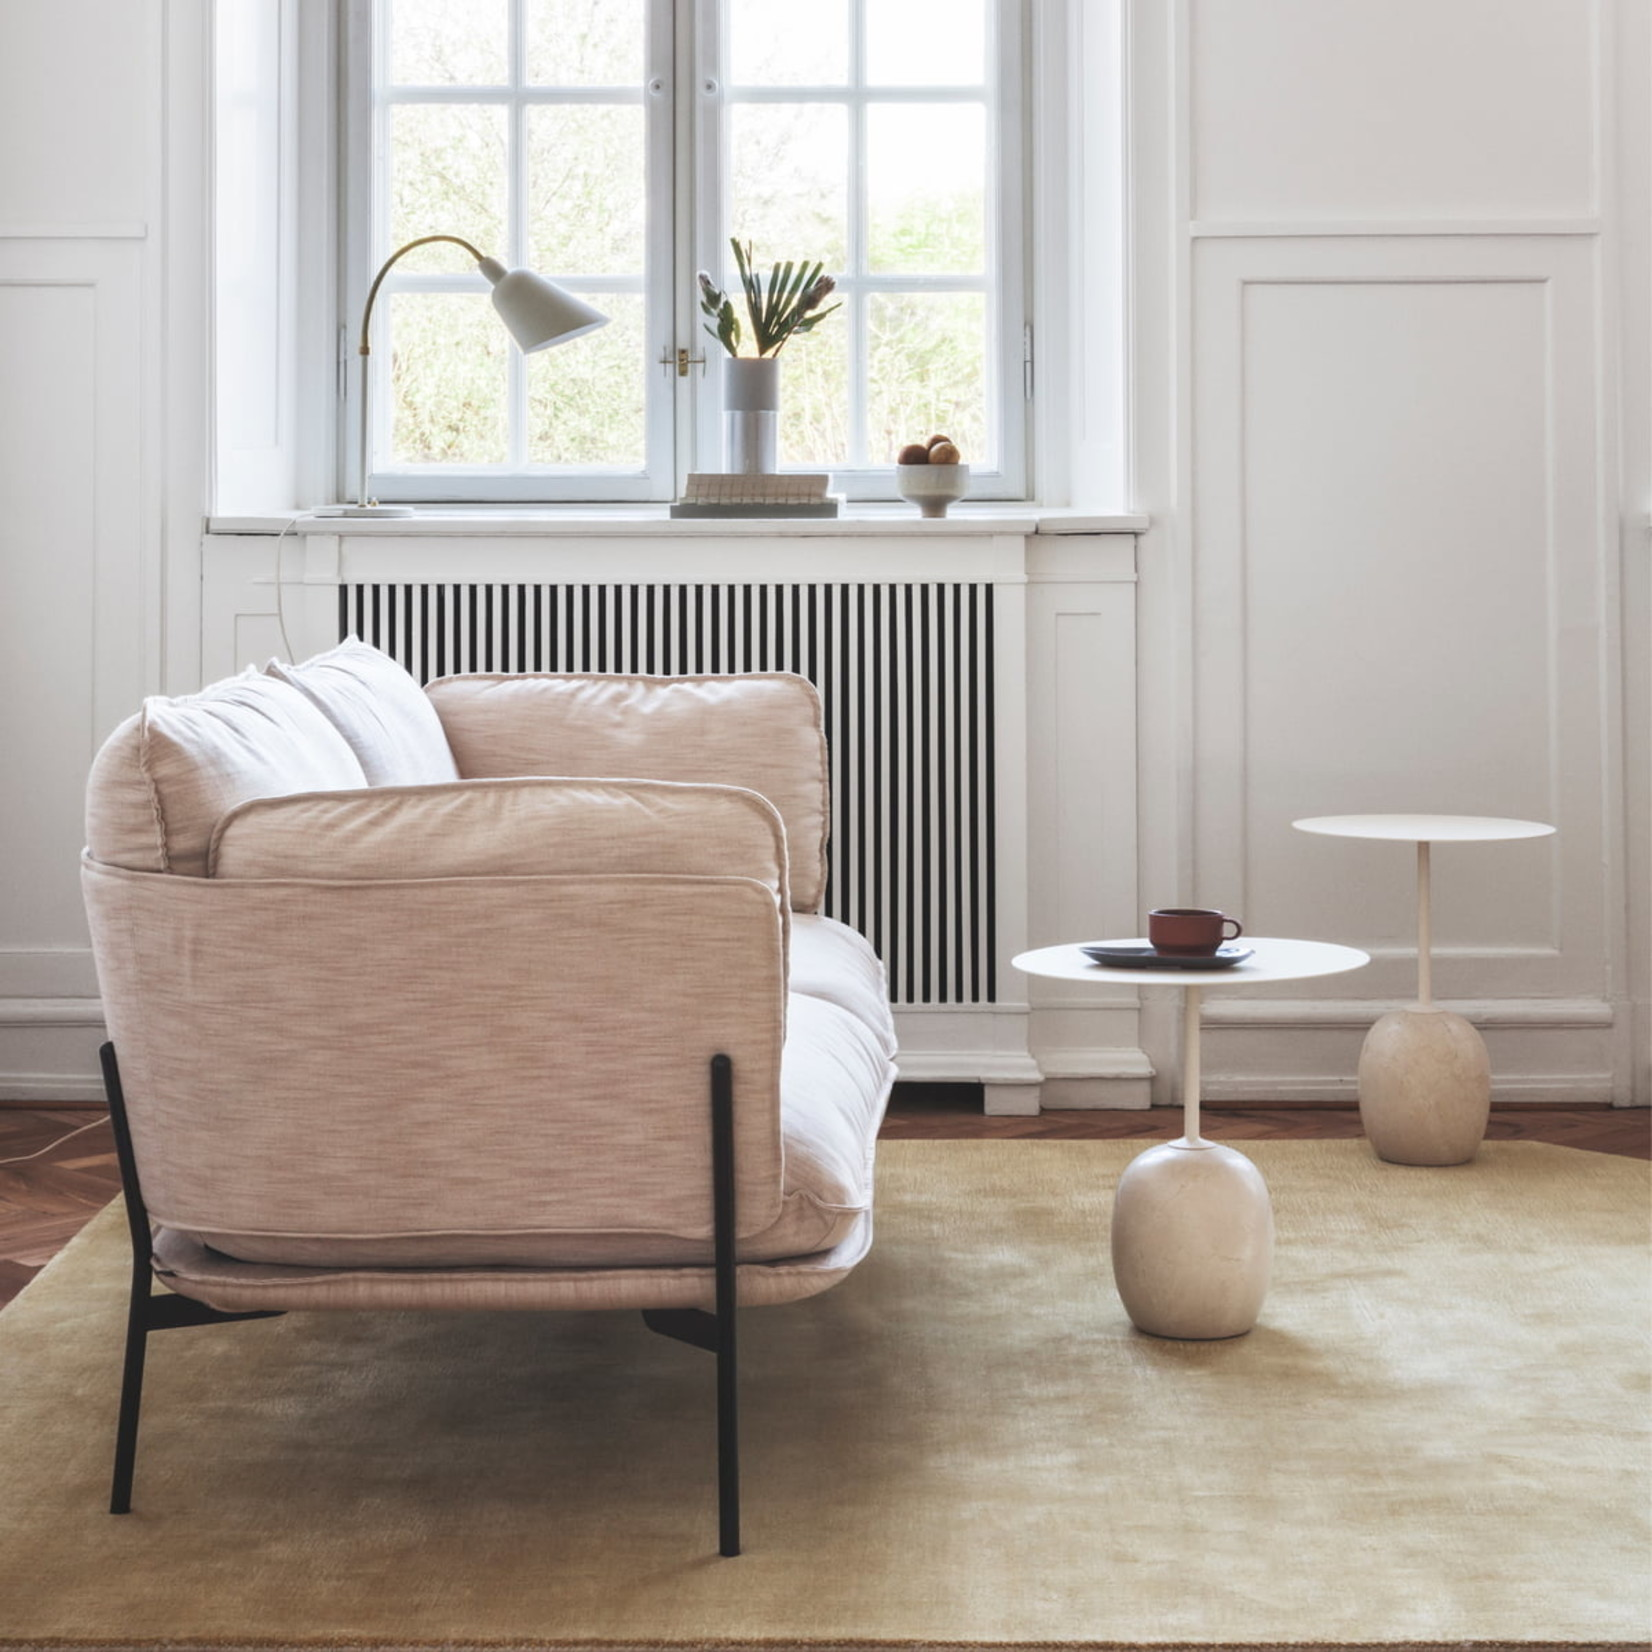 &Tradition Side table Lato LN9 | Ivory white & Crema Diva marble